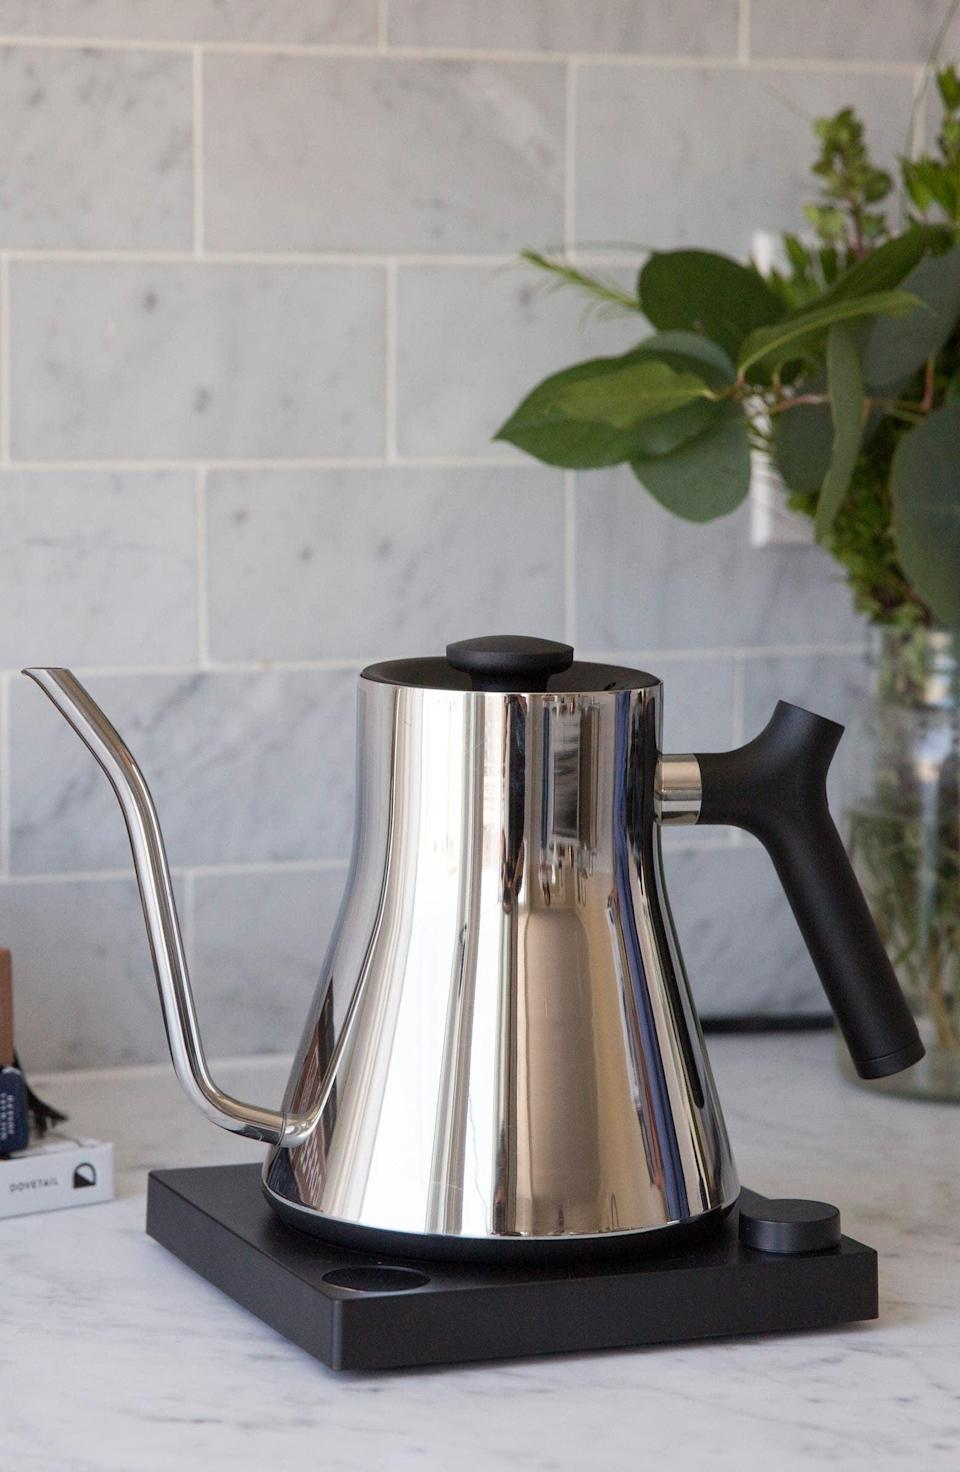 <p>The popular <span>Fellow Stagg EKG Electric Pour Over Kettle</span> ($149) is a customer favorite. It's great for people who love pour-over coffee.</p>